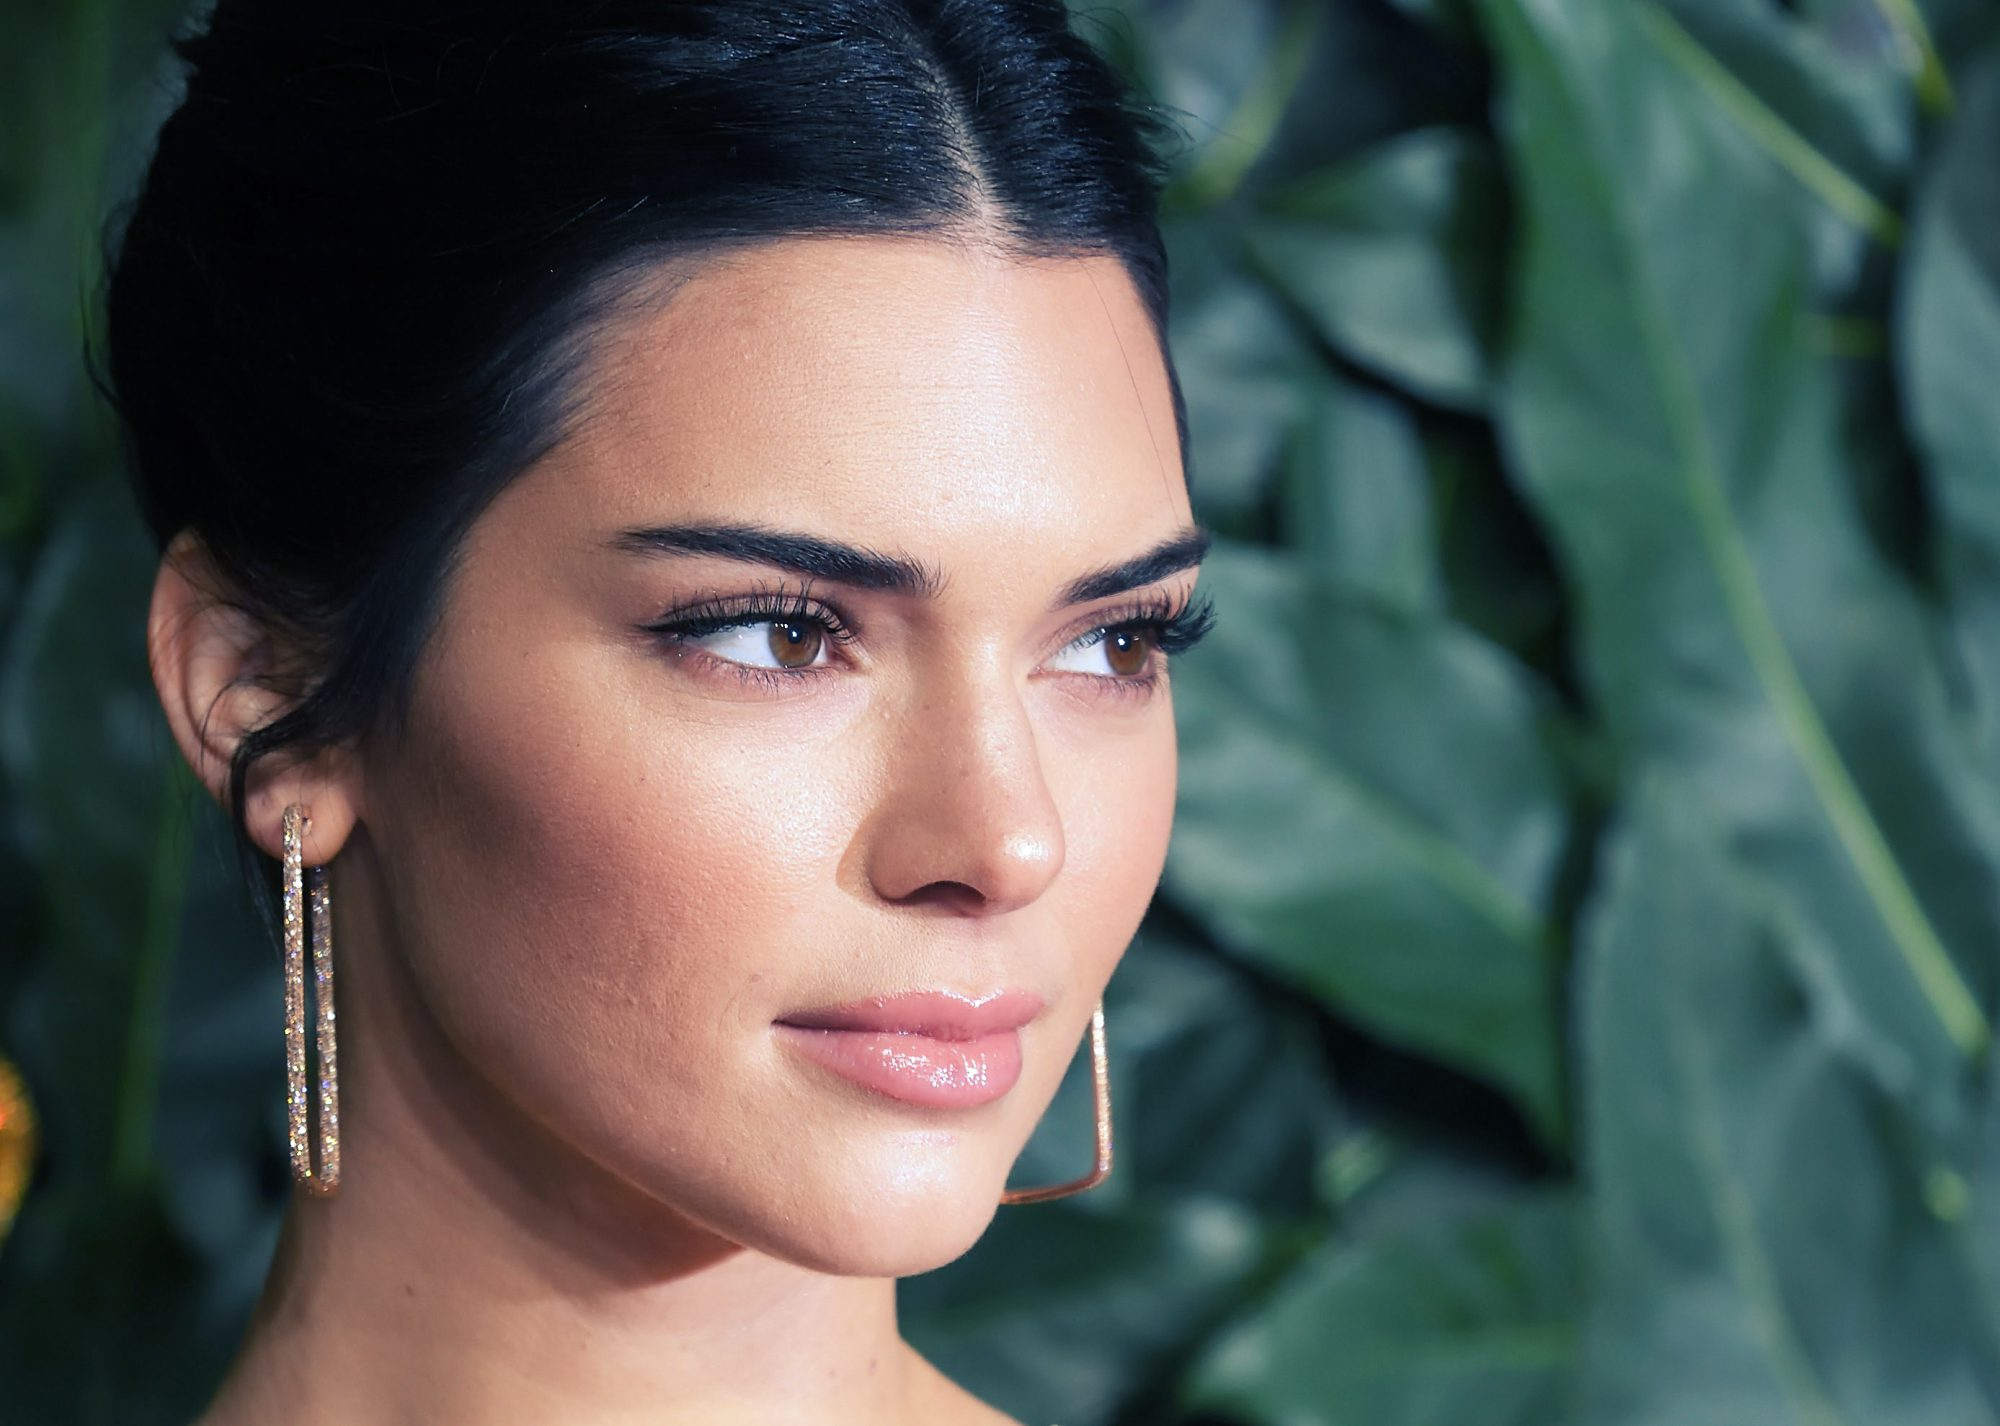 Kendall Jenner Is Facing Serious Backlash After Her Over-Hyped Announcement About Acne